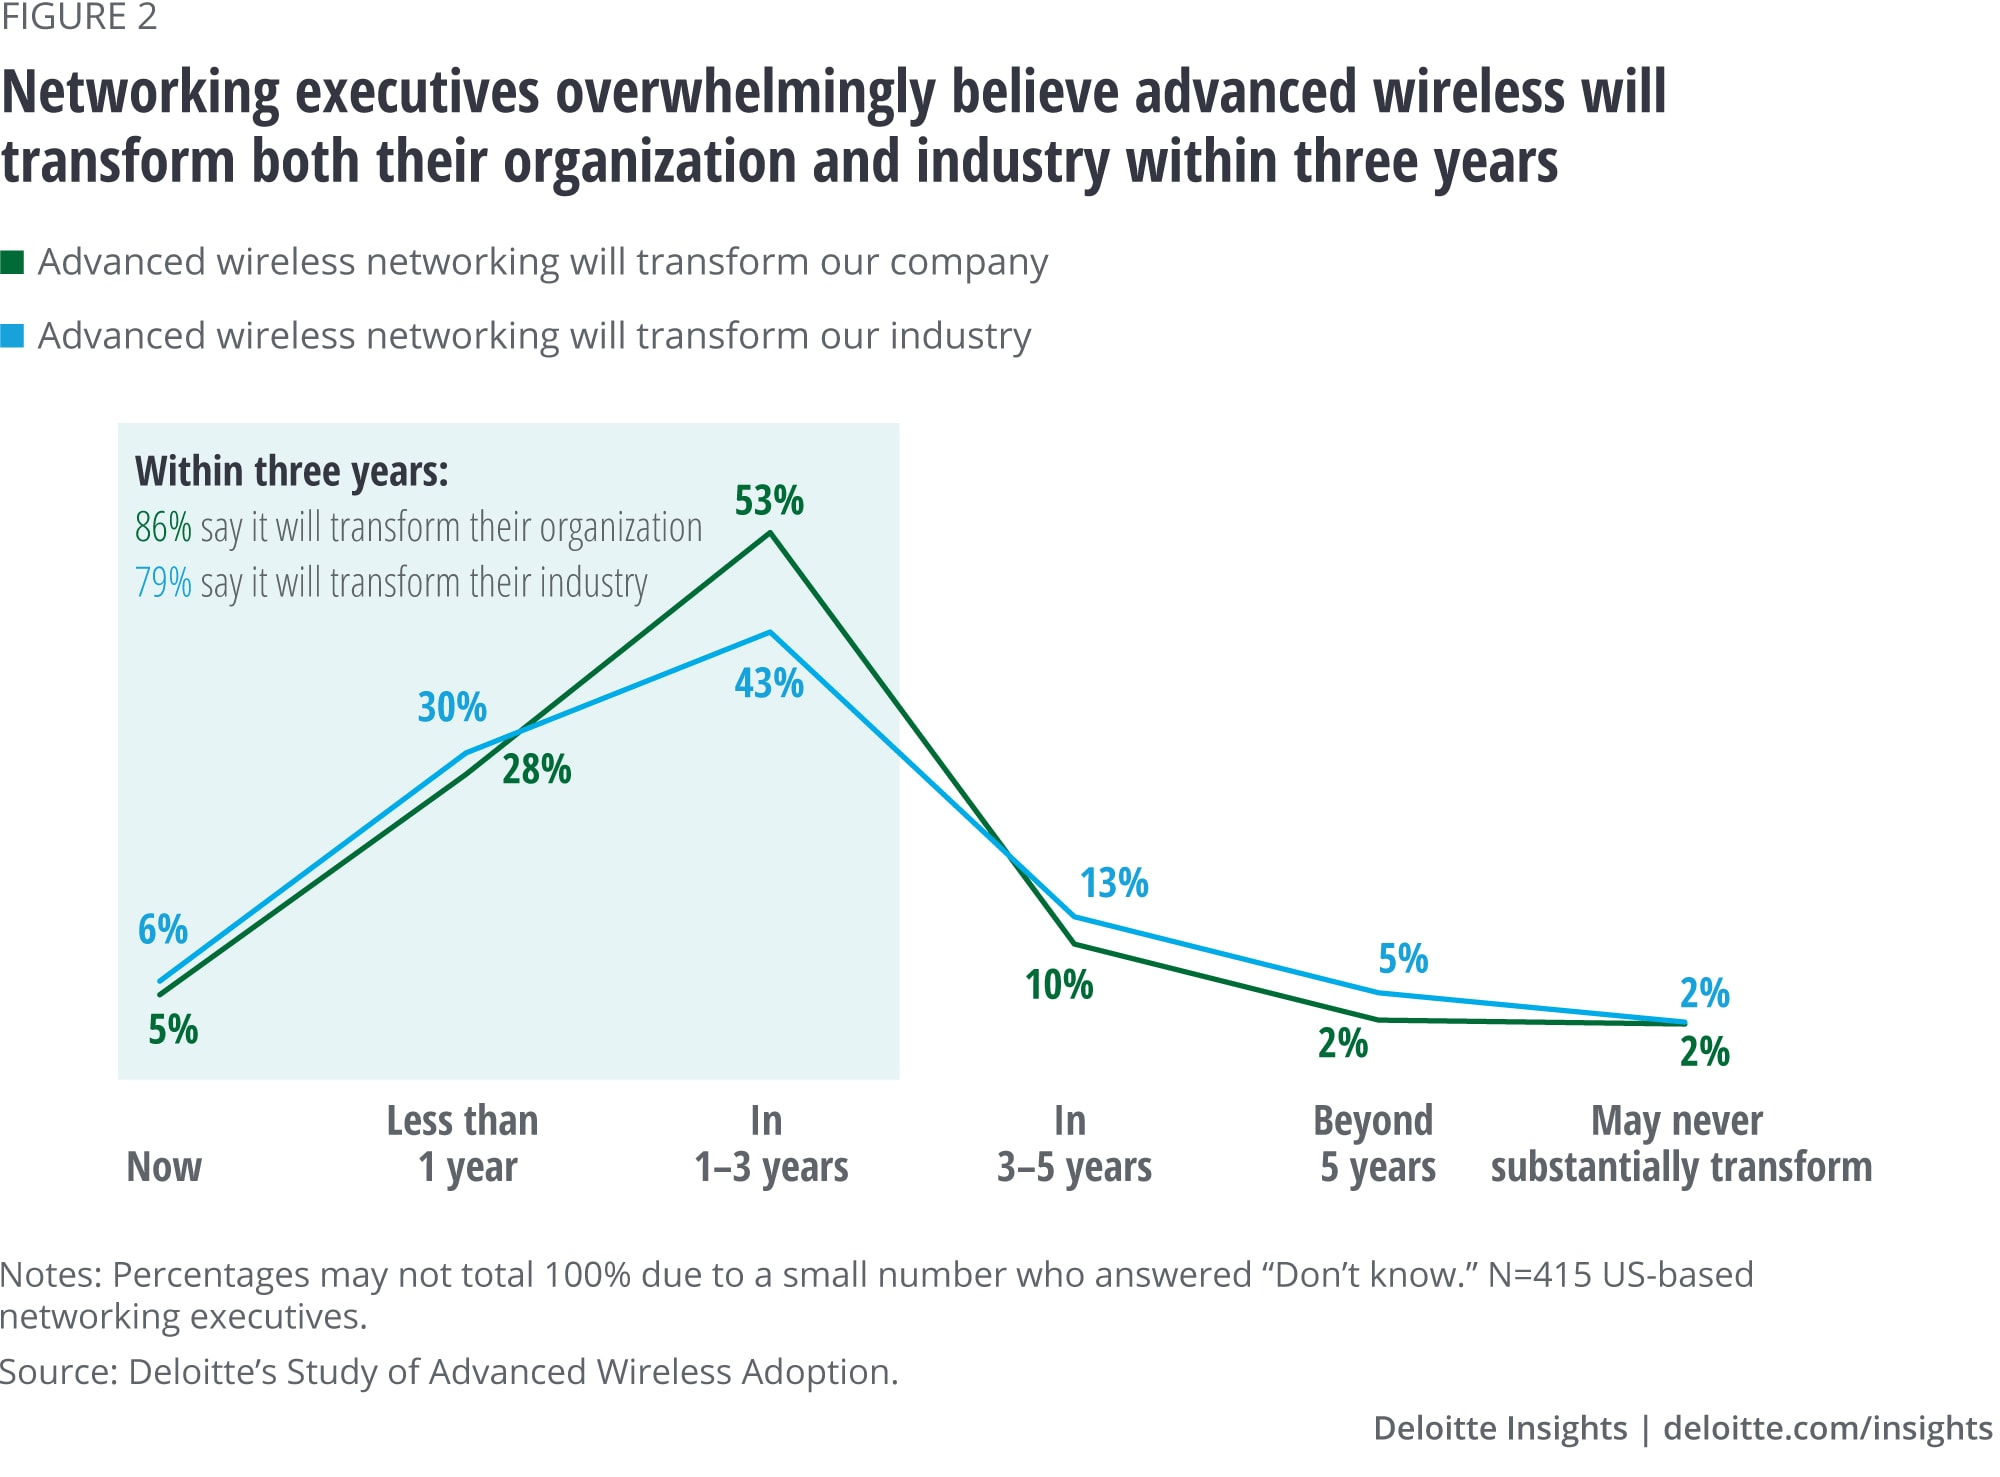 Networking executives overwhelmingly believe advanced wireless will transform both their organization and industry within three years